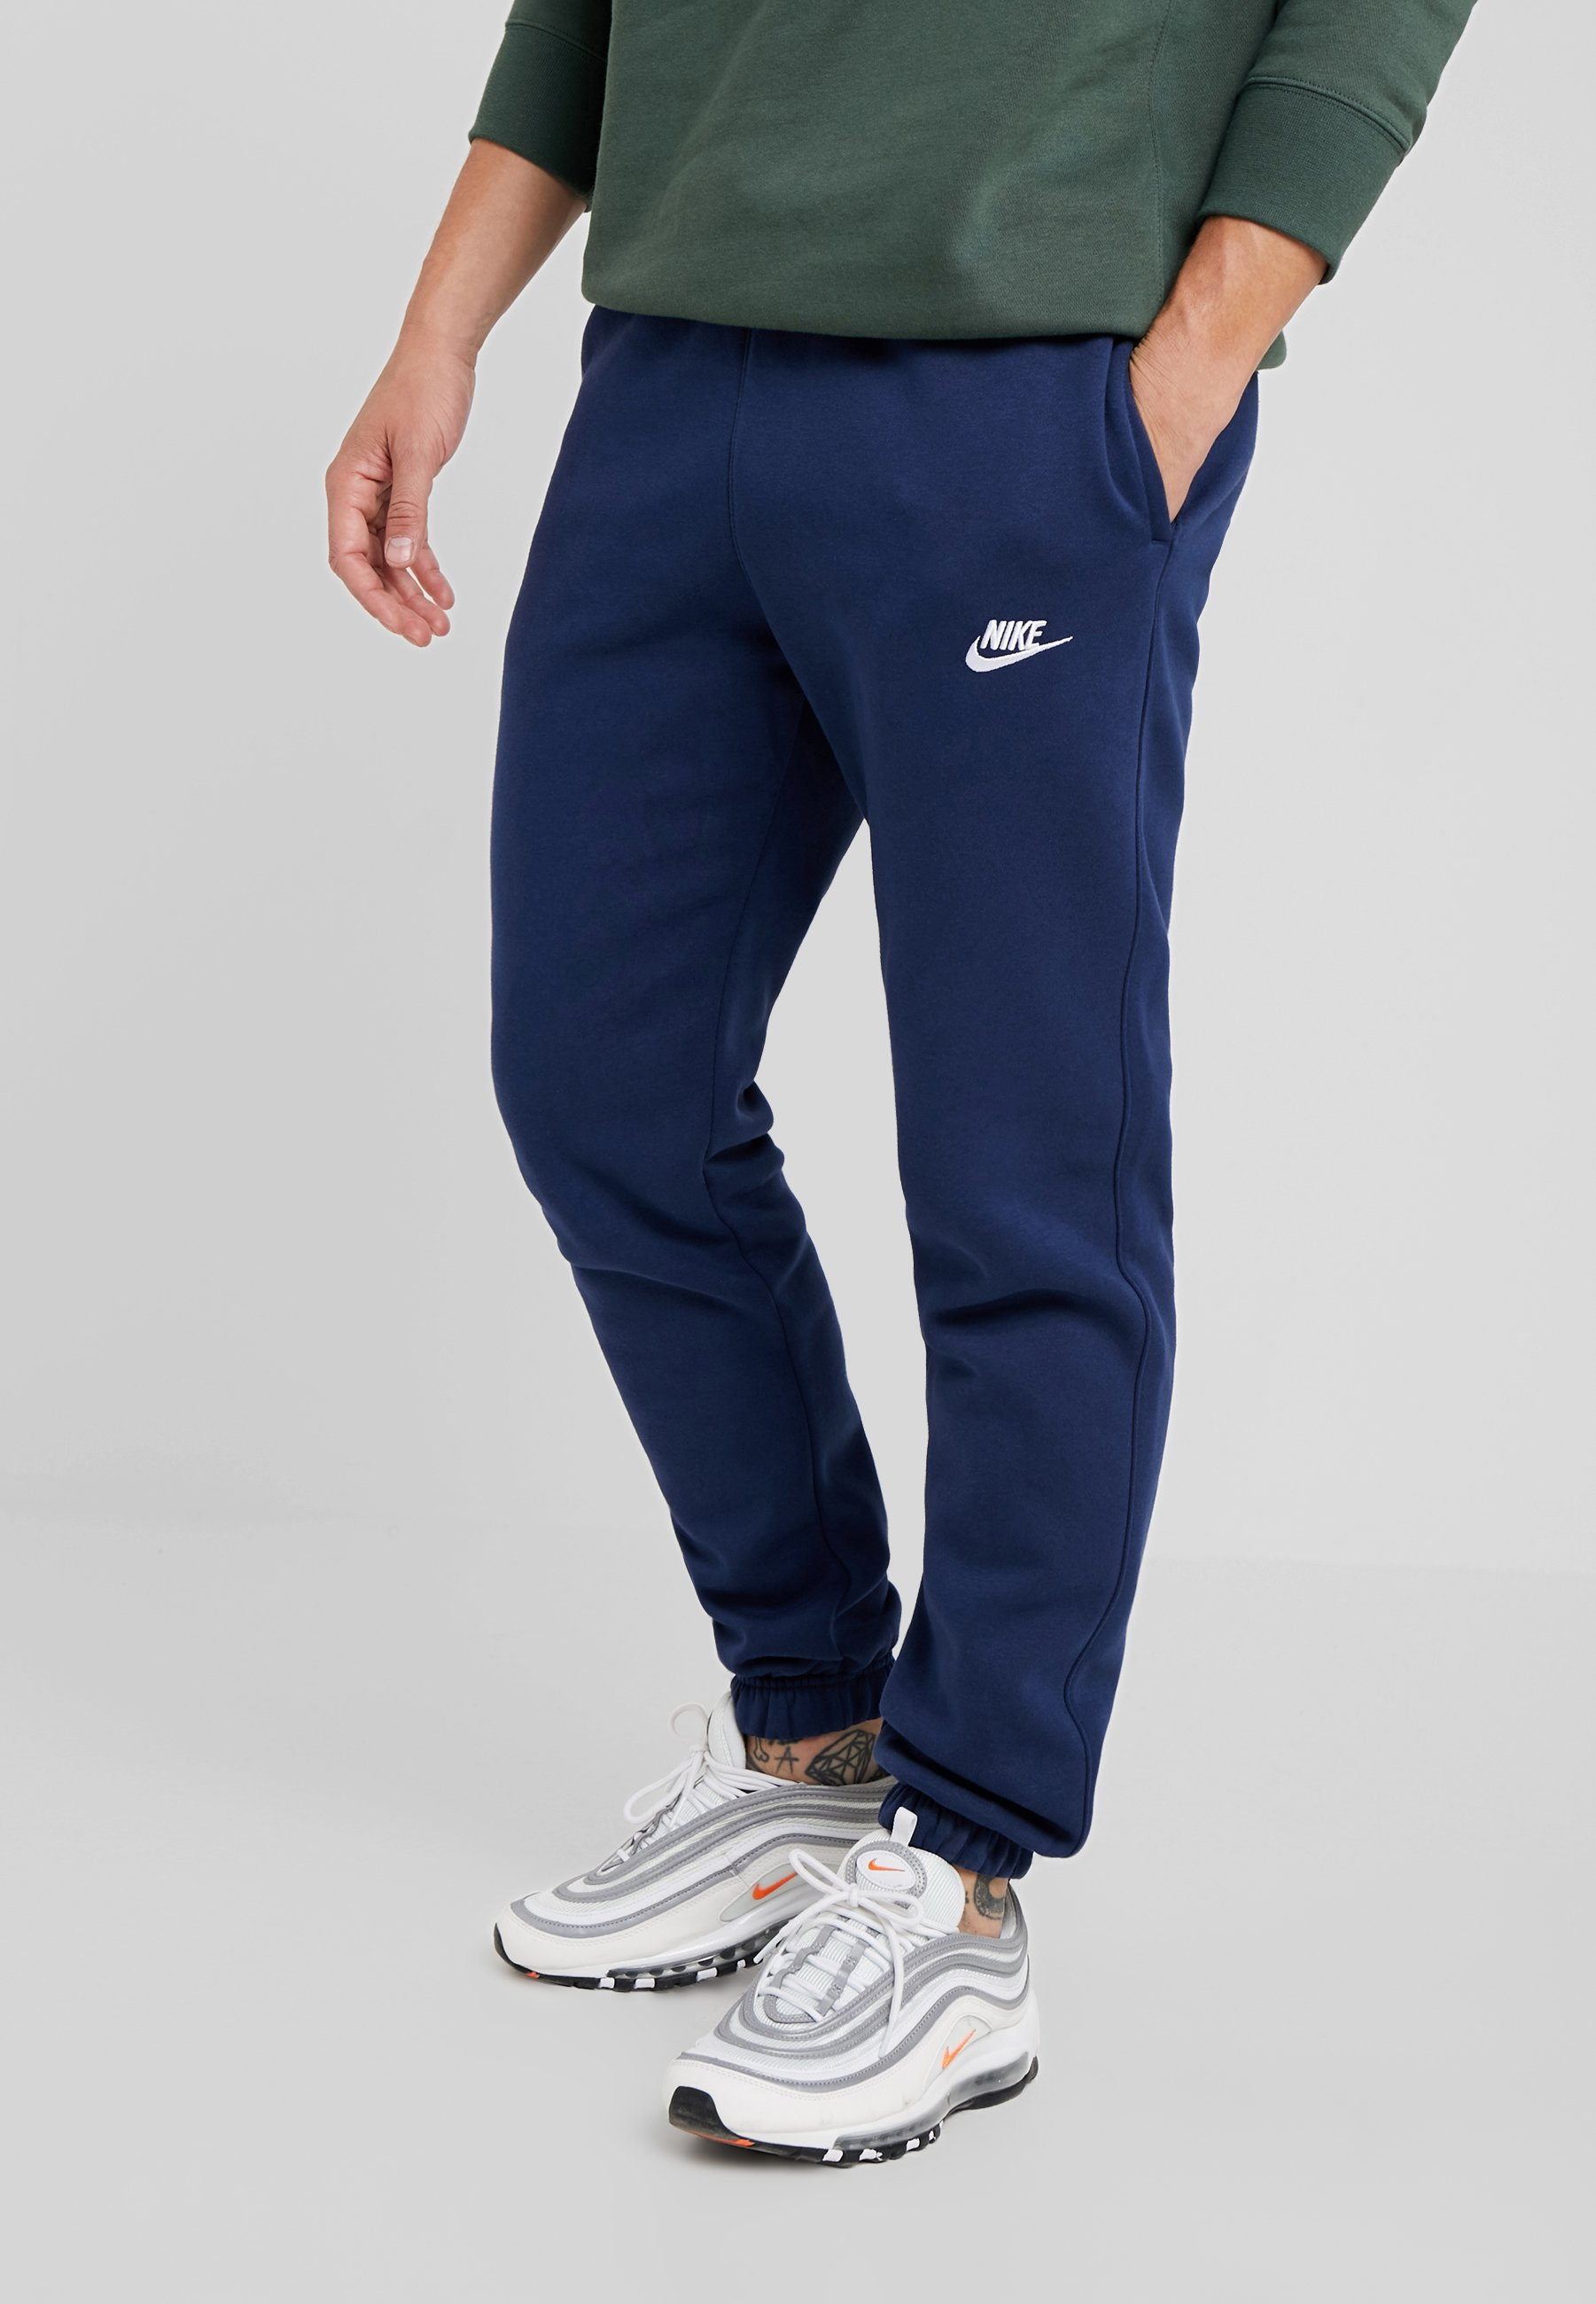 2020 Newest For Cheap Men's Clothing Nike Sportswear CLUB PANT Tracksuit bottoms midnight navy aUypnLvrQ klo2W8A7z